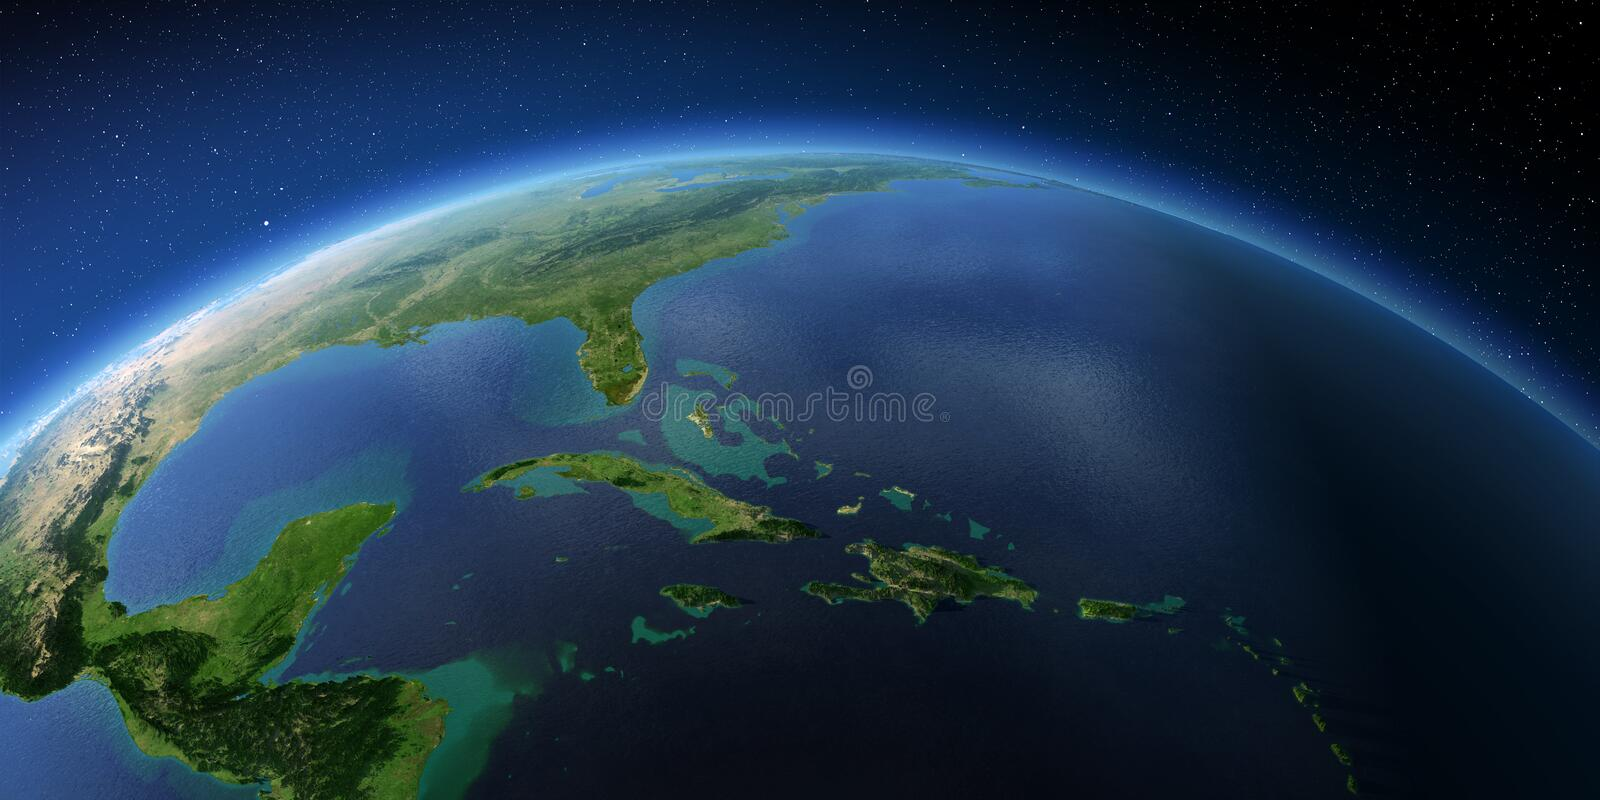 Highly detailed Earth. Caribbean Sea and the Gulf of Mexico. Highly detailed planet Earth with exaggerated relief illuminated by the evening sun. Caribbean Sea royalty free illustration